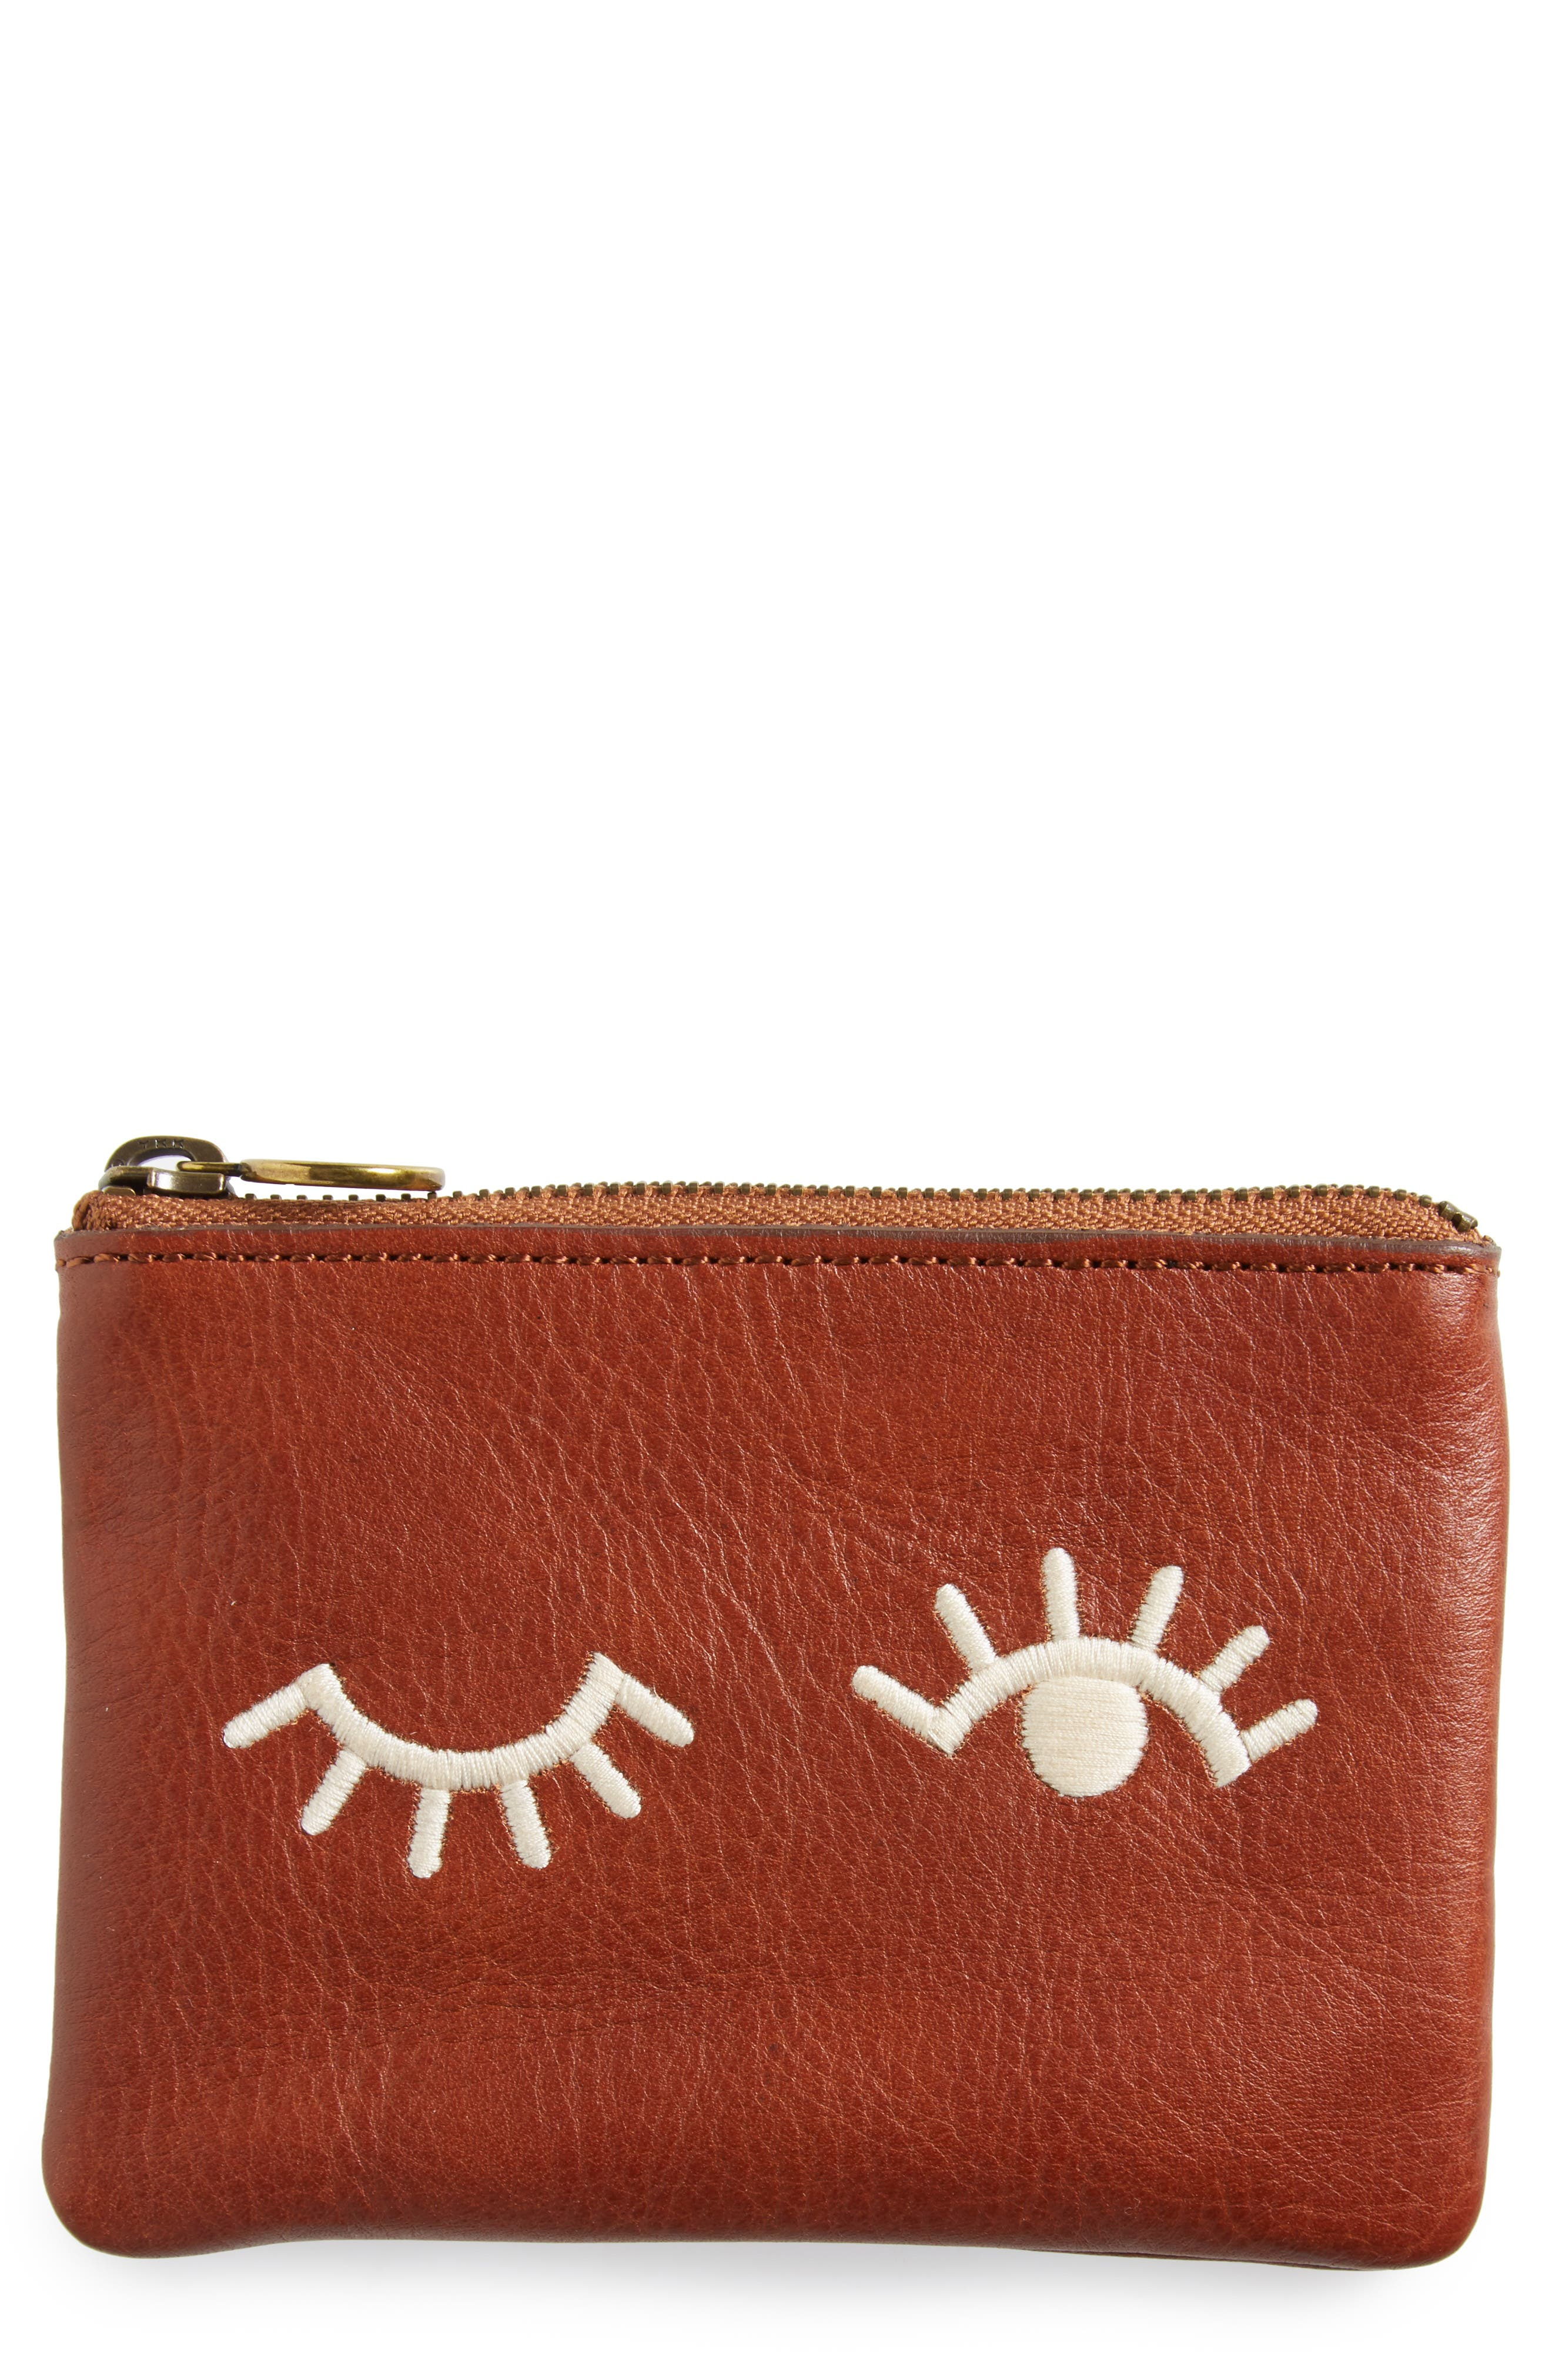 The Small Pouch Clutch: Embroidered Face Edition,                             Main thumbnail 1, color,                             200